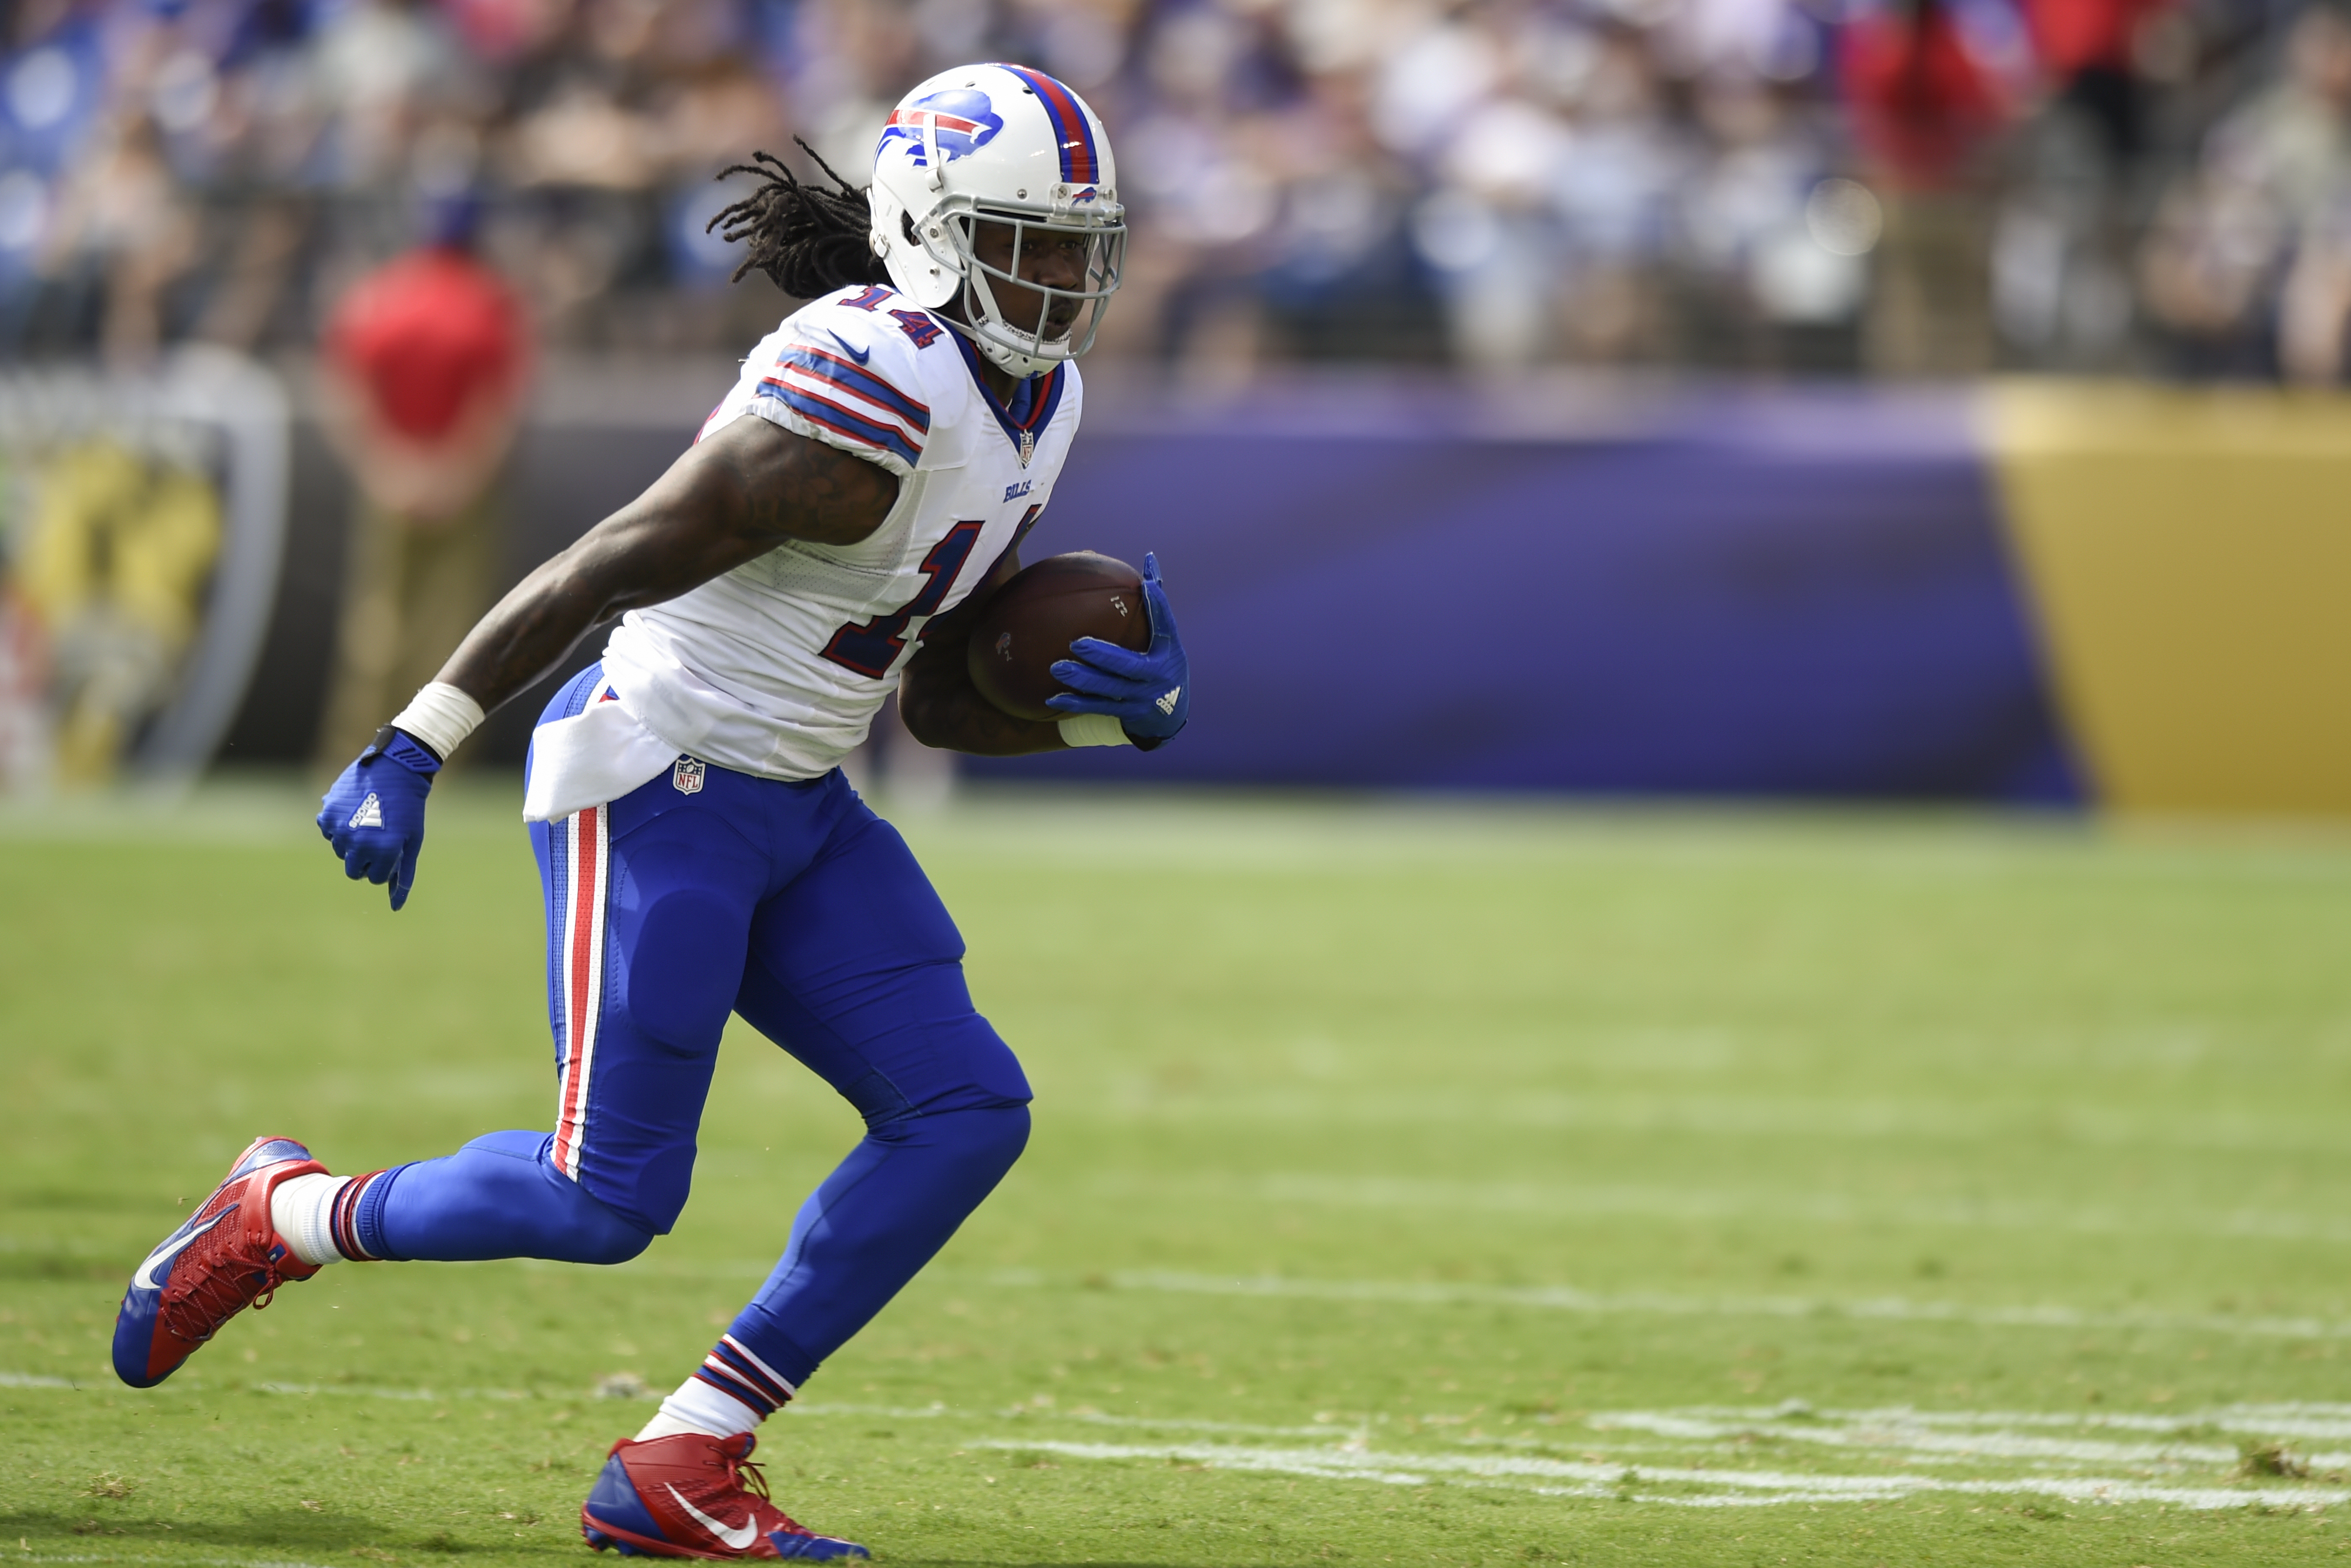 Buffalo Bills wide receiver Sammy Watkins (14) carries the ball during the first half of an NFL football game against the Baltimore Ravens in Baltimore, Sunday, Sept. 11, 2016. (AP Photo/Gail Burton)